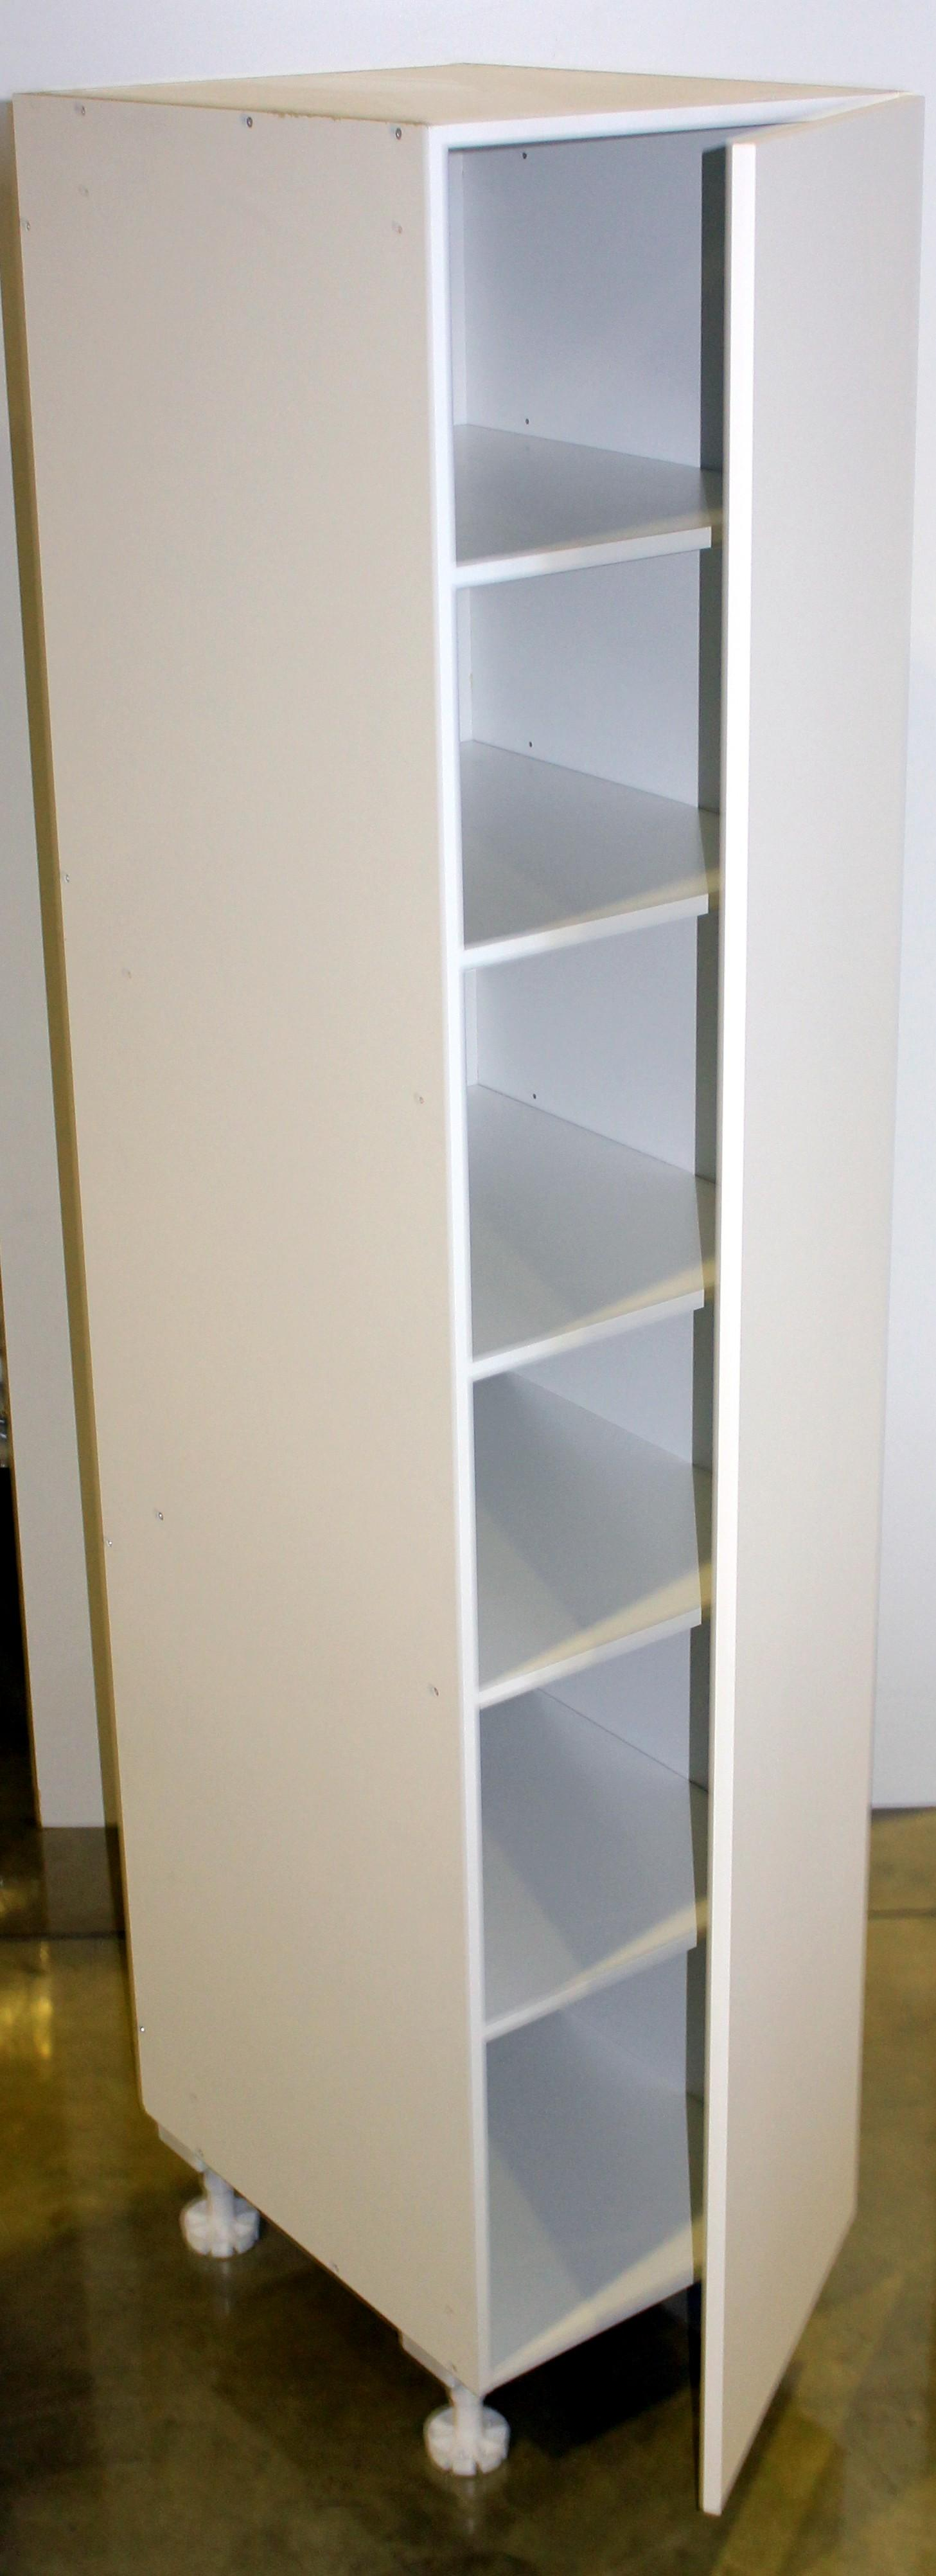 500mm Single Door Pantry Cabinet